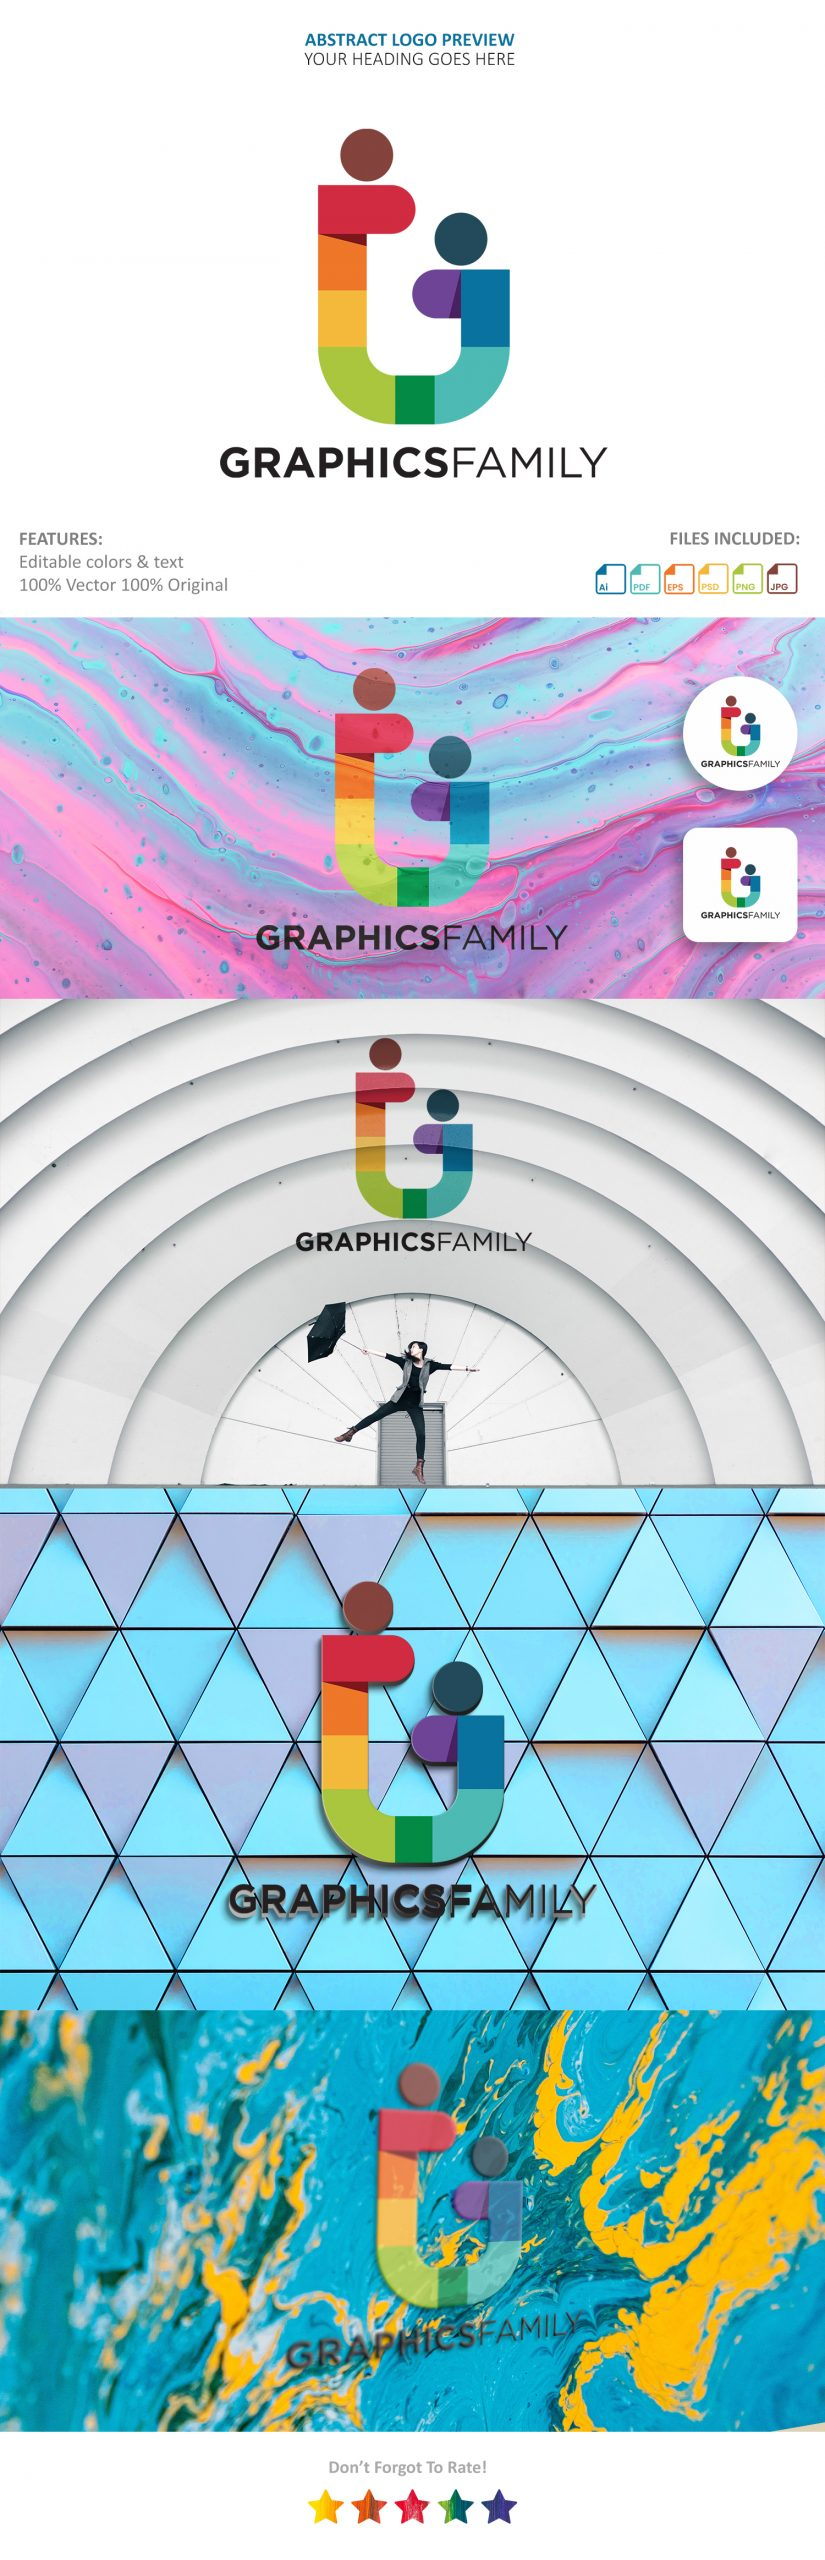 Abstract Logo Showcase Mockup by GraphicsFamily